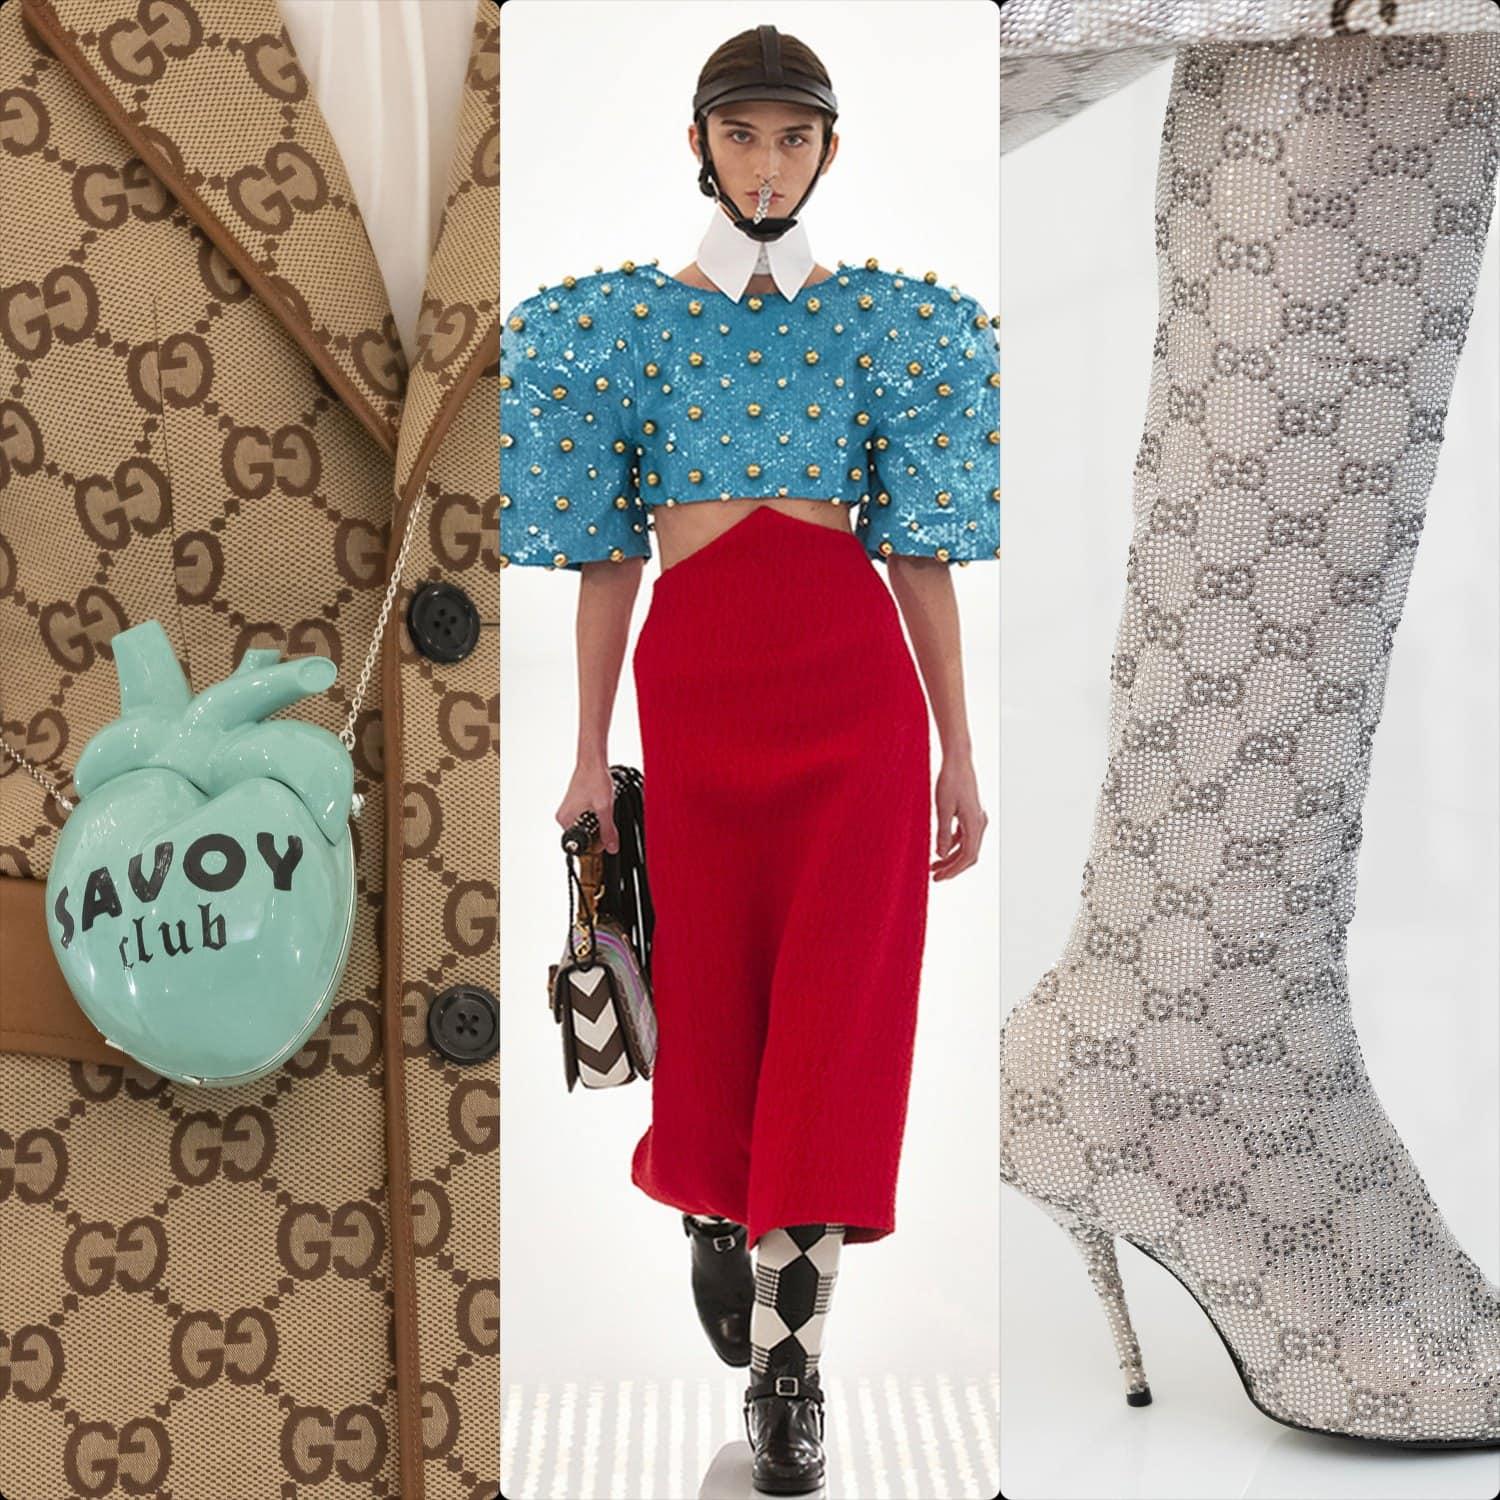 Gucci Fall Winter 2021-2022. RUNWAY MAGAZINE ® Collections. RUNWAY NOW / RUNWAY NEW